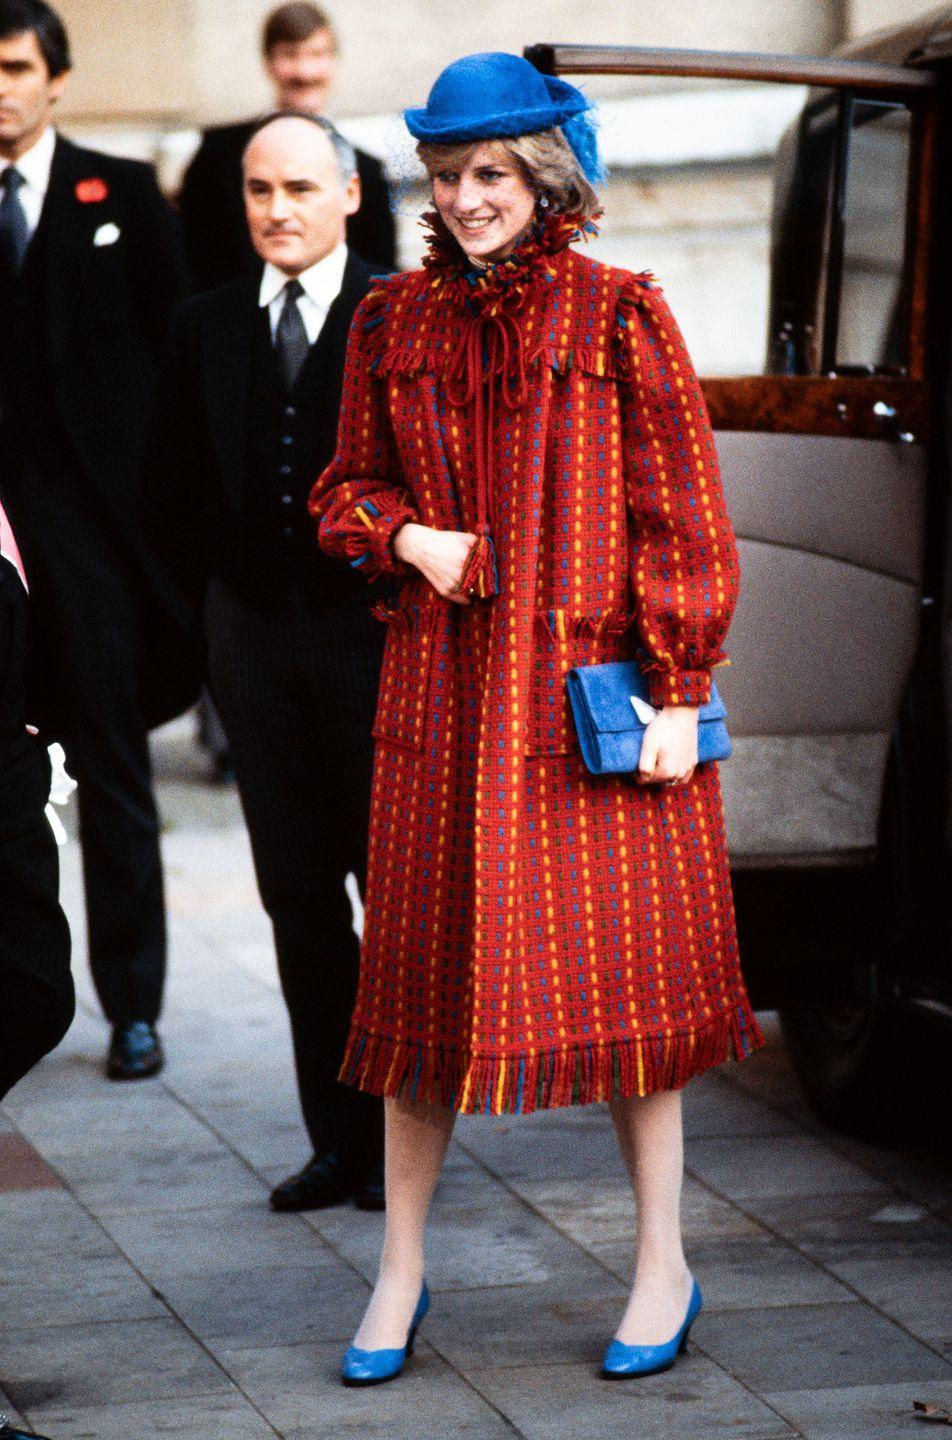 <p>Princess Diana pictured at the Guildhall in London, on the day it's announced she's pregnant with Prince William.</p>